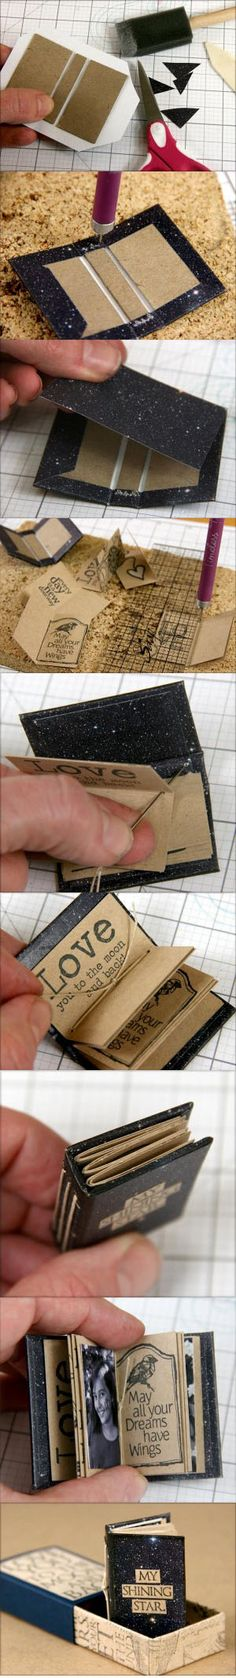 Constellations Mini Album Tutorial #clubscrap http://clubscrap.com/constellations-matchbox-mini-album-tutorial/